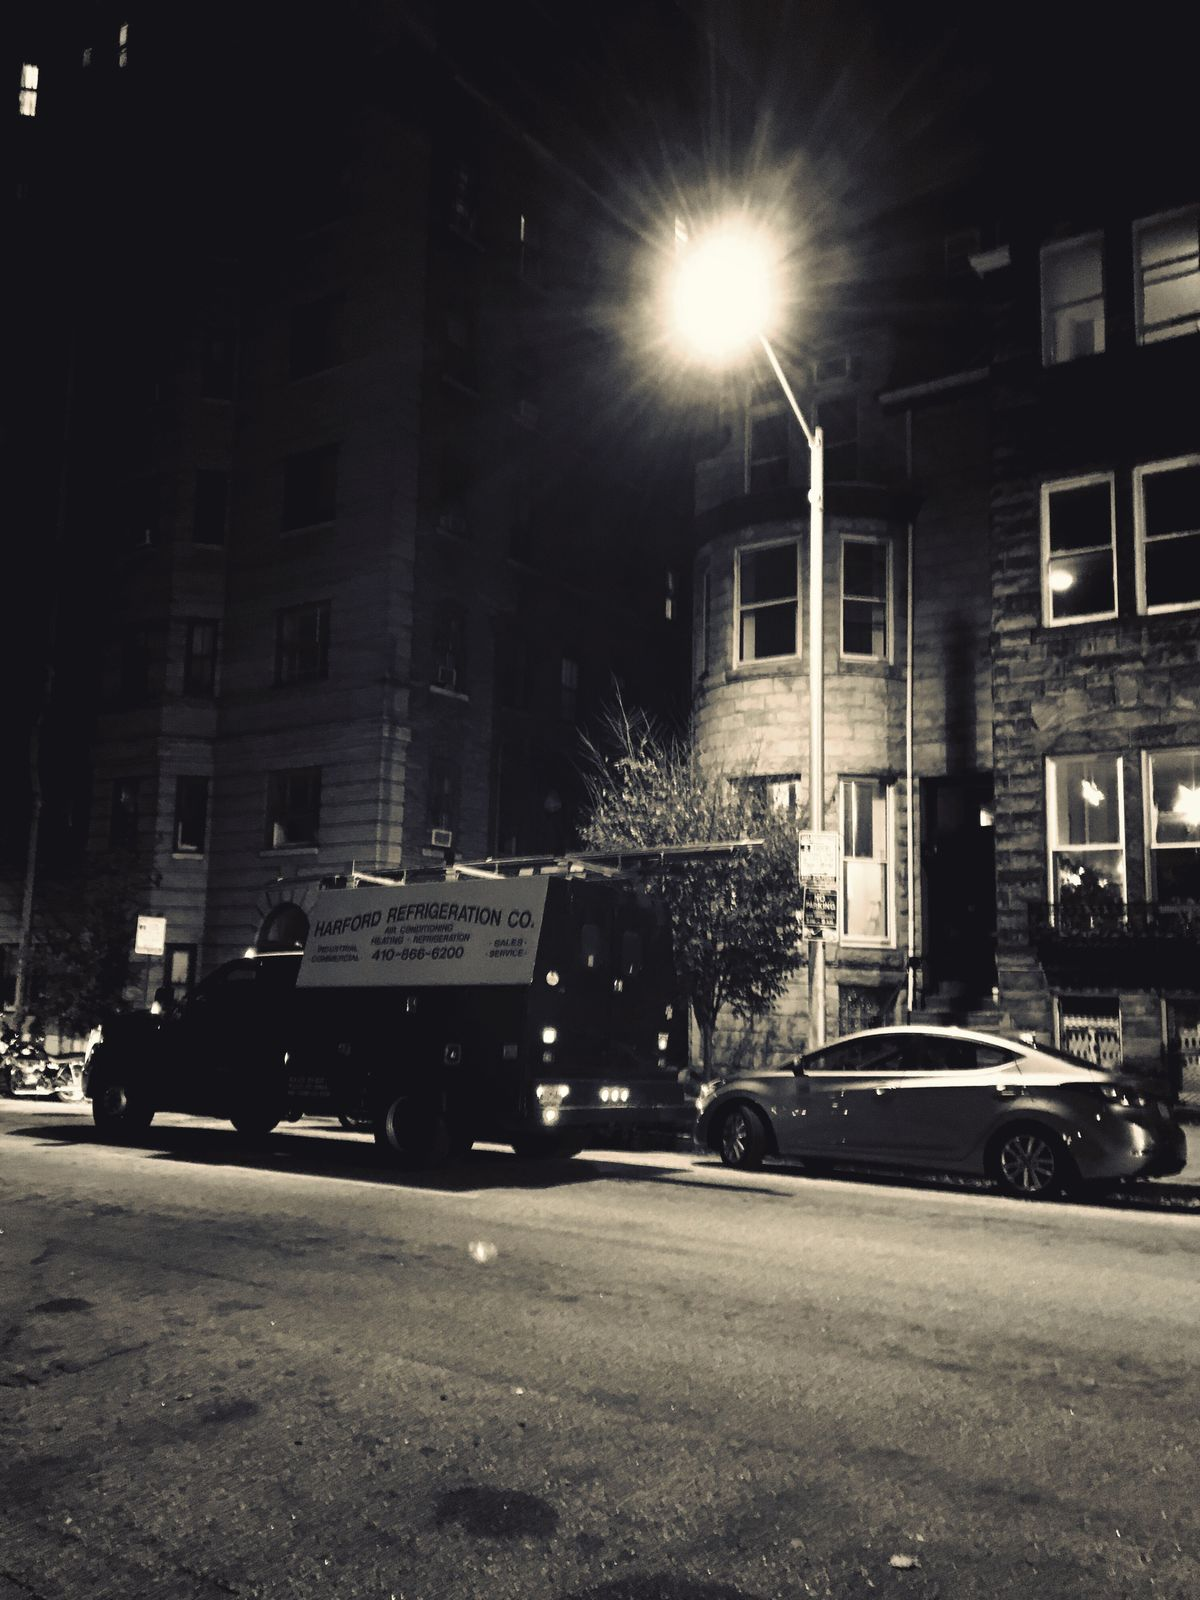 Night Photography Black & White Tonal Differences Color Filter Street Photography Road Street Light